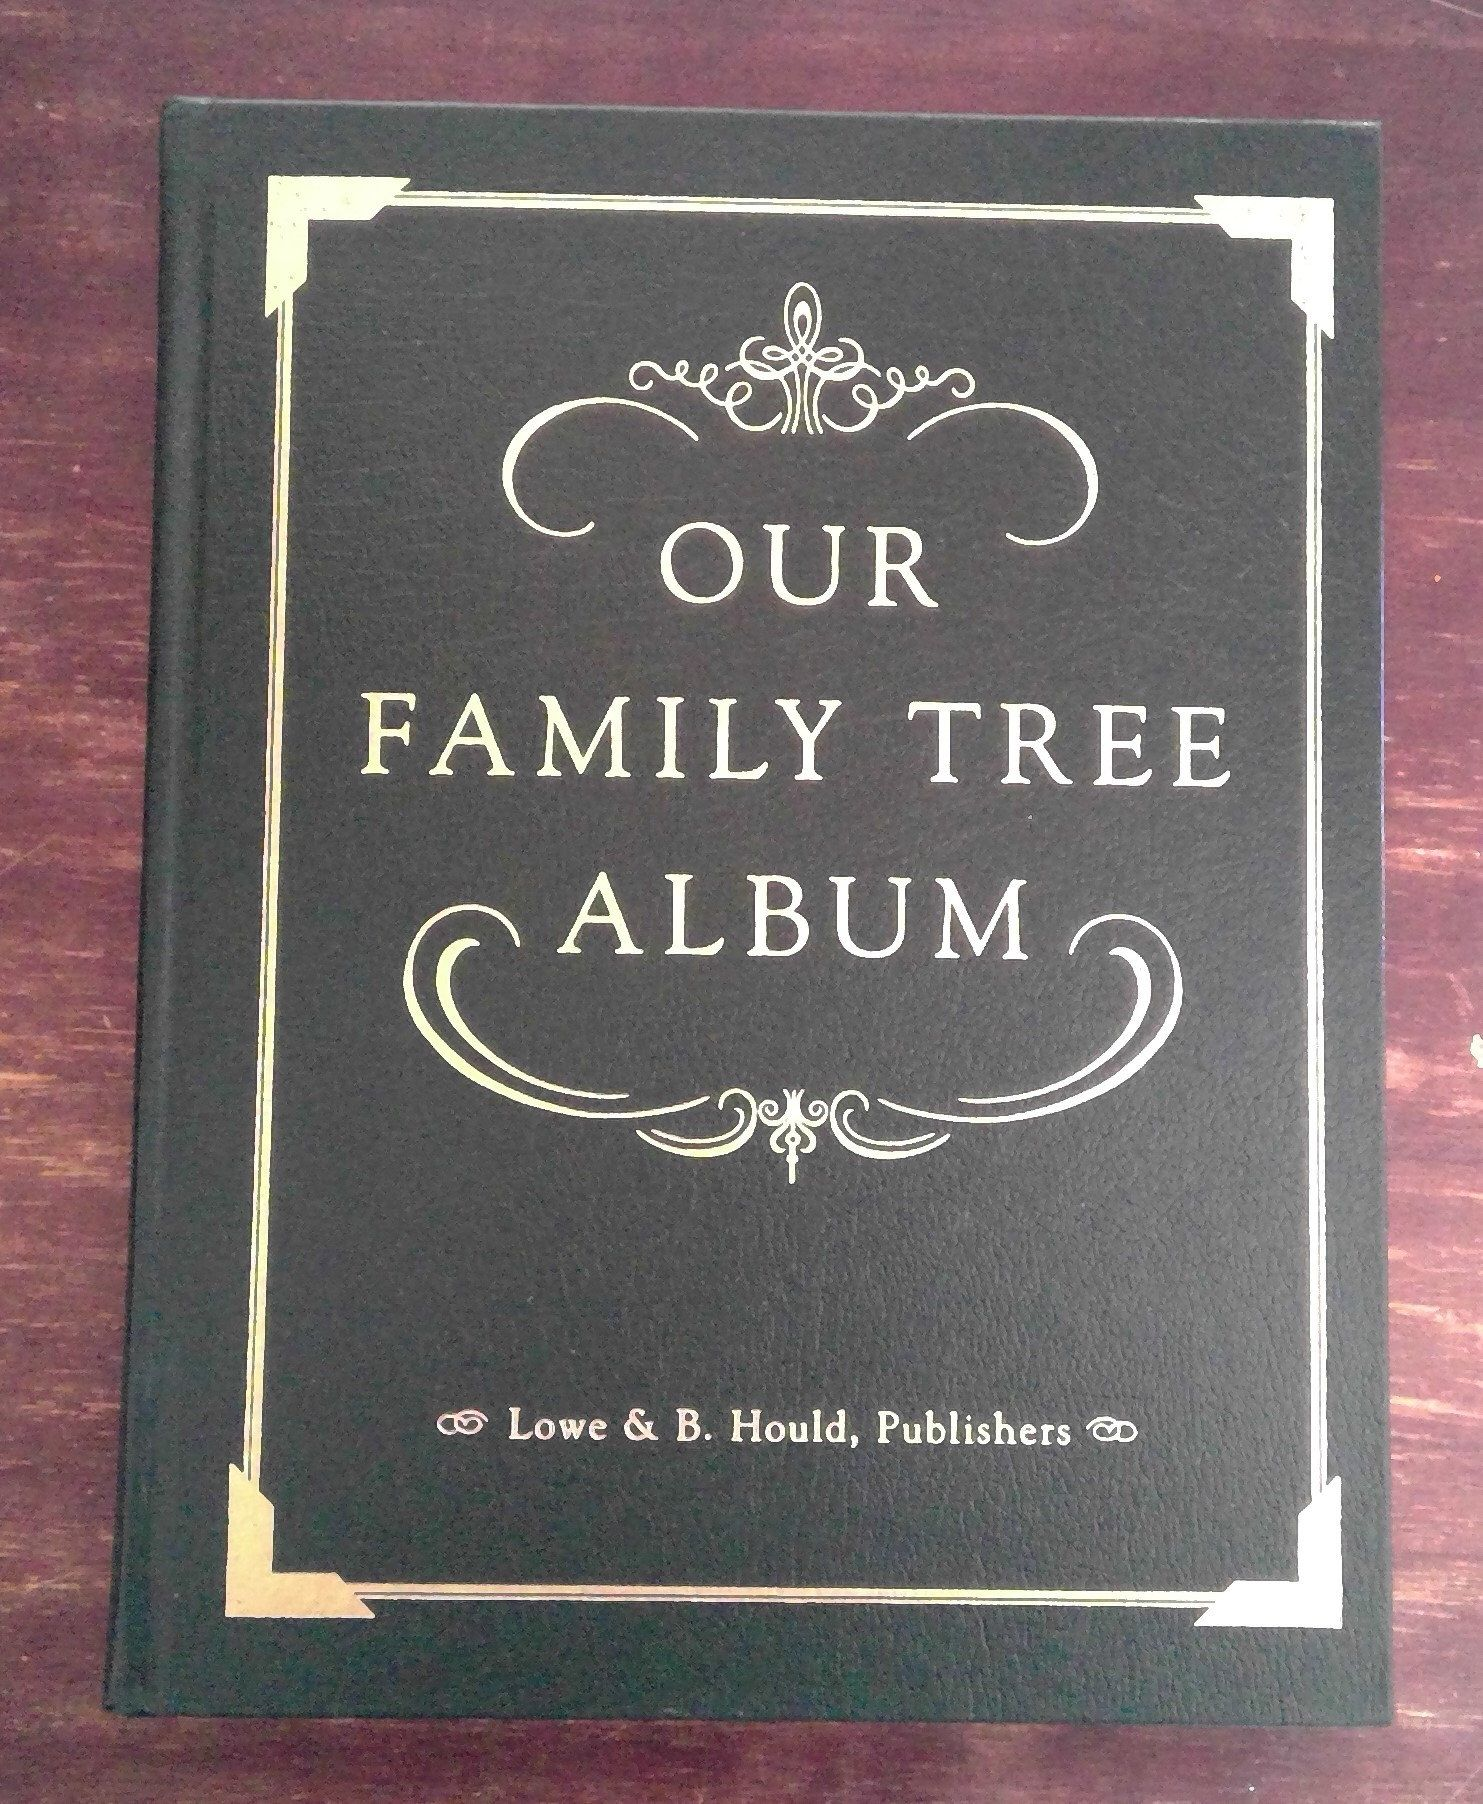 Our Family Tree Album Lowe & B. Hould, Publisher vintage